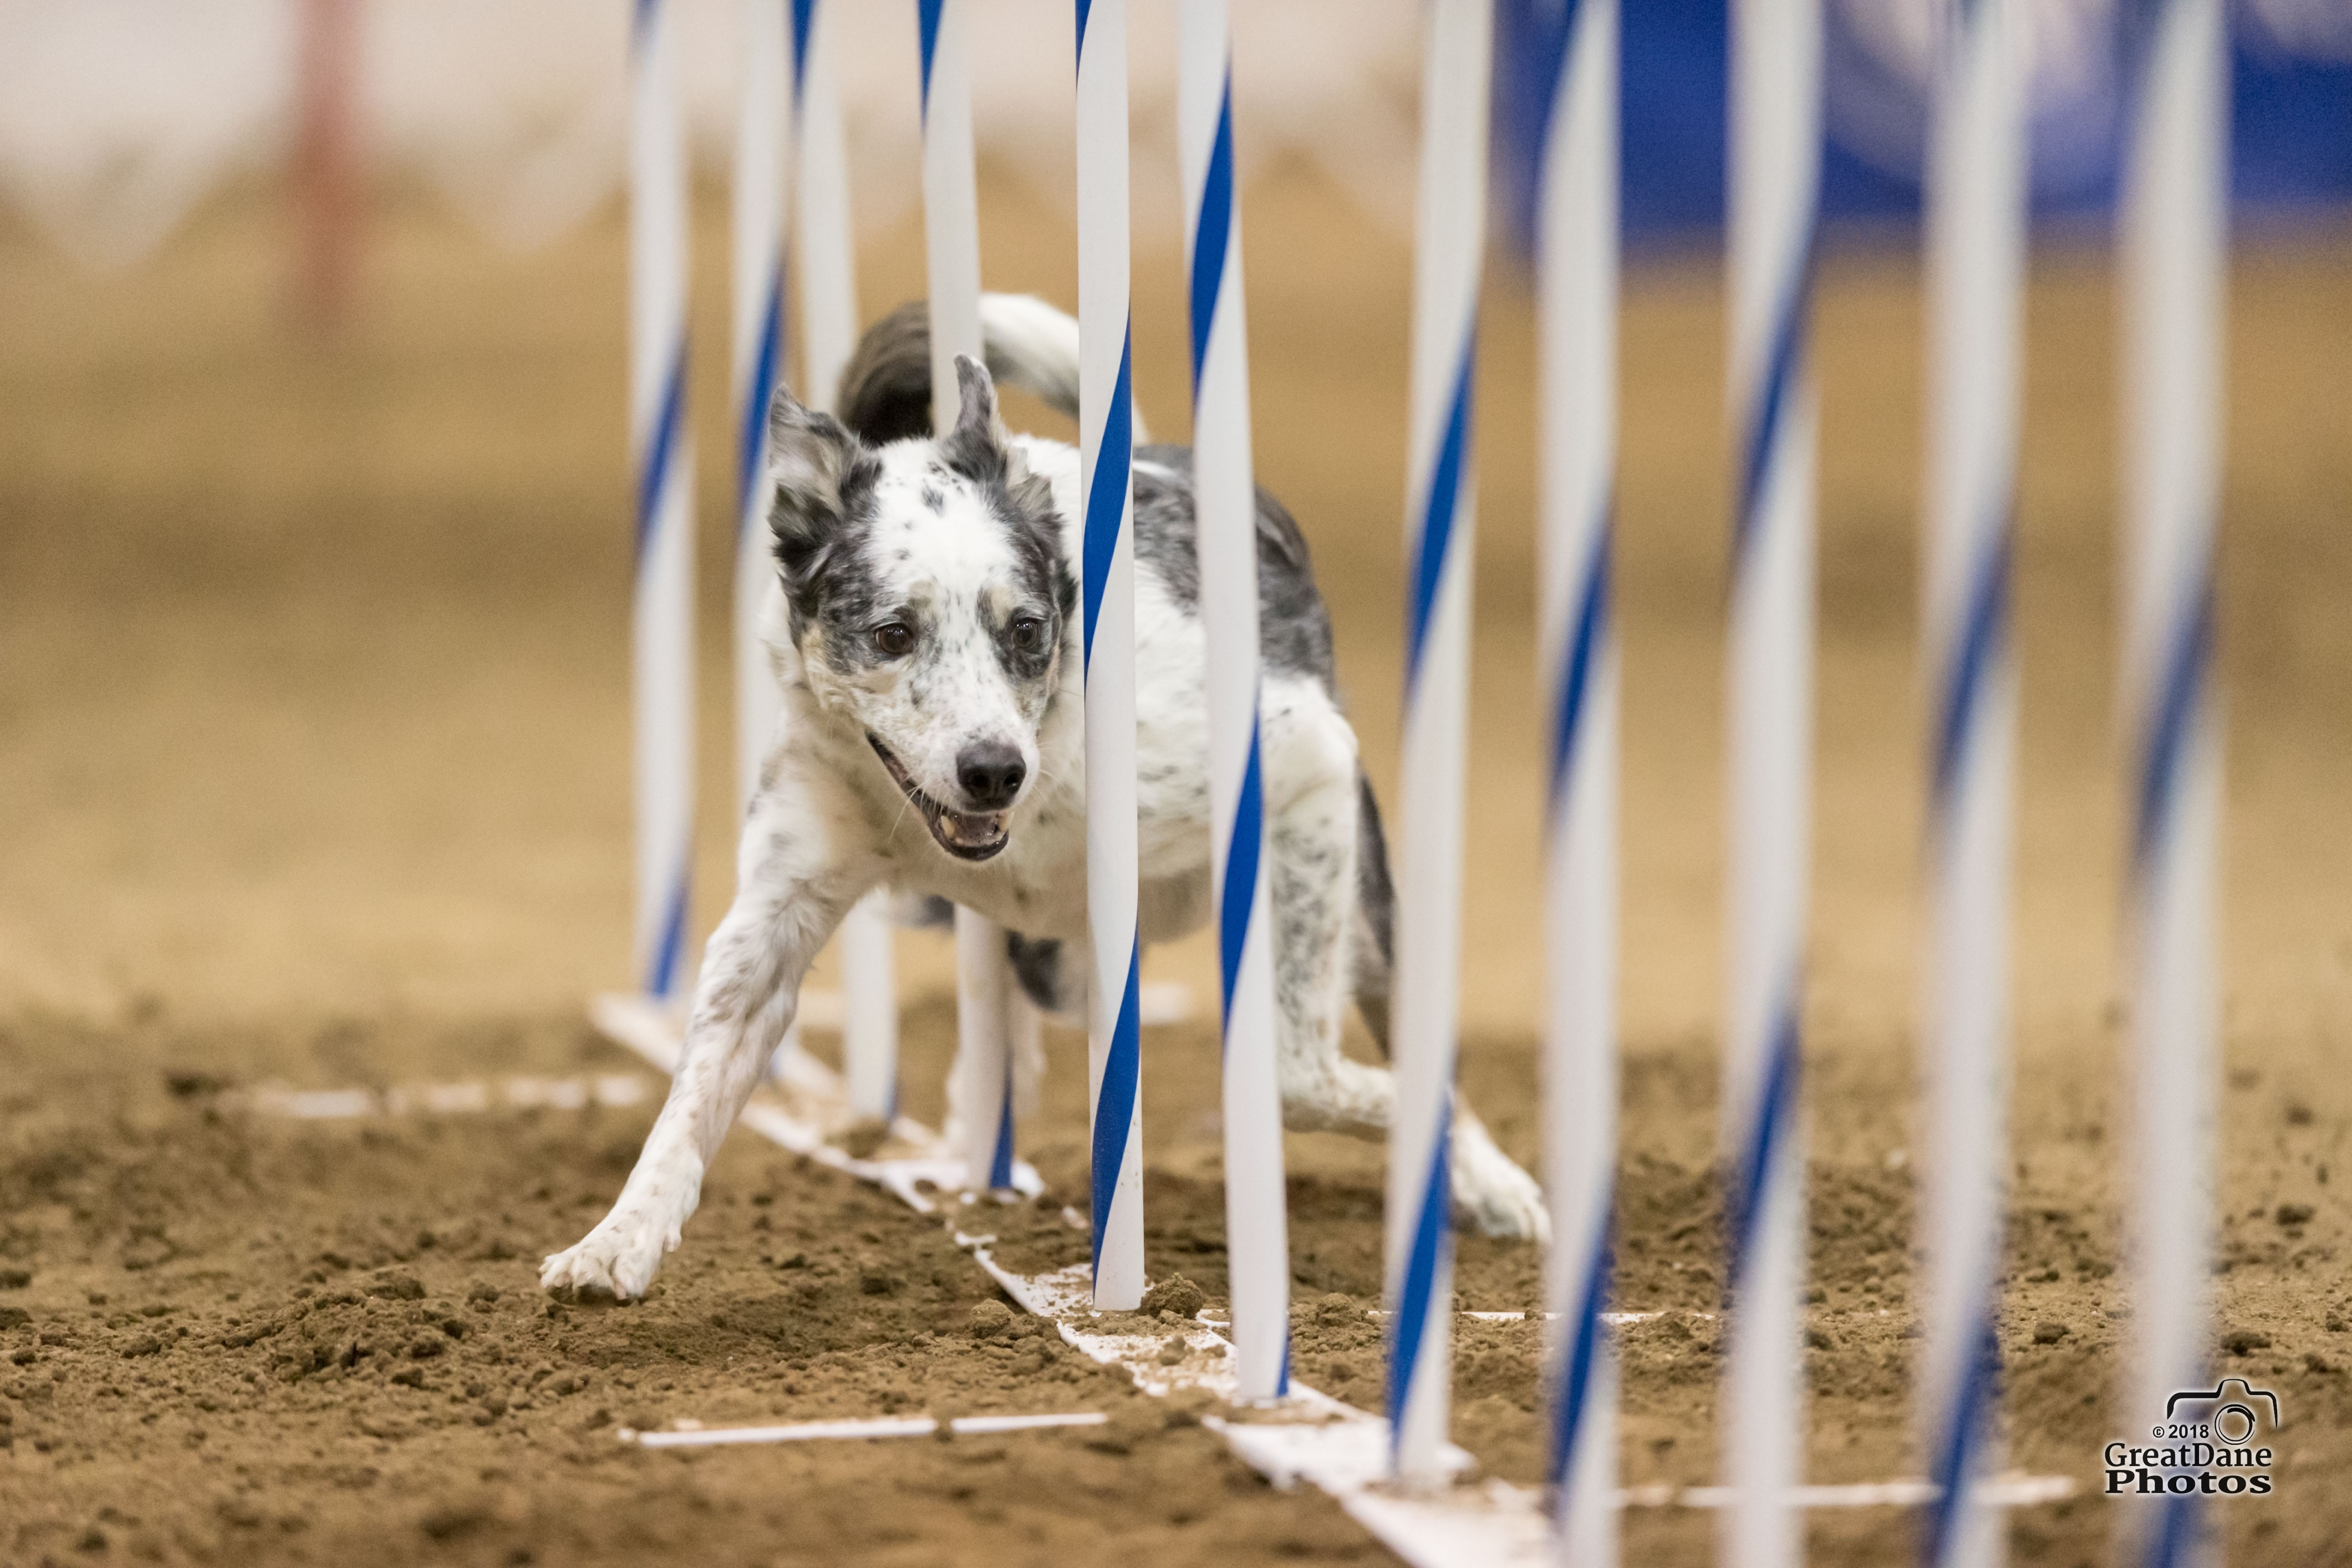 A dog running weave poles in an agility event.